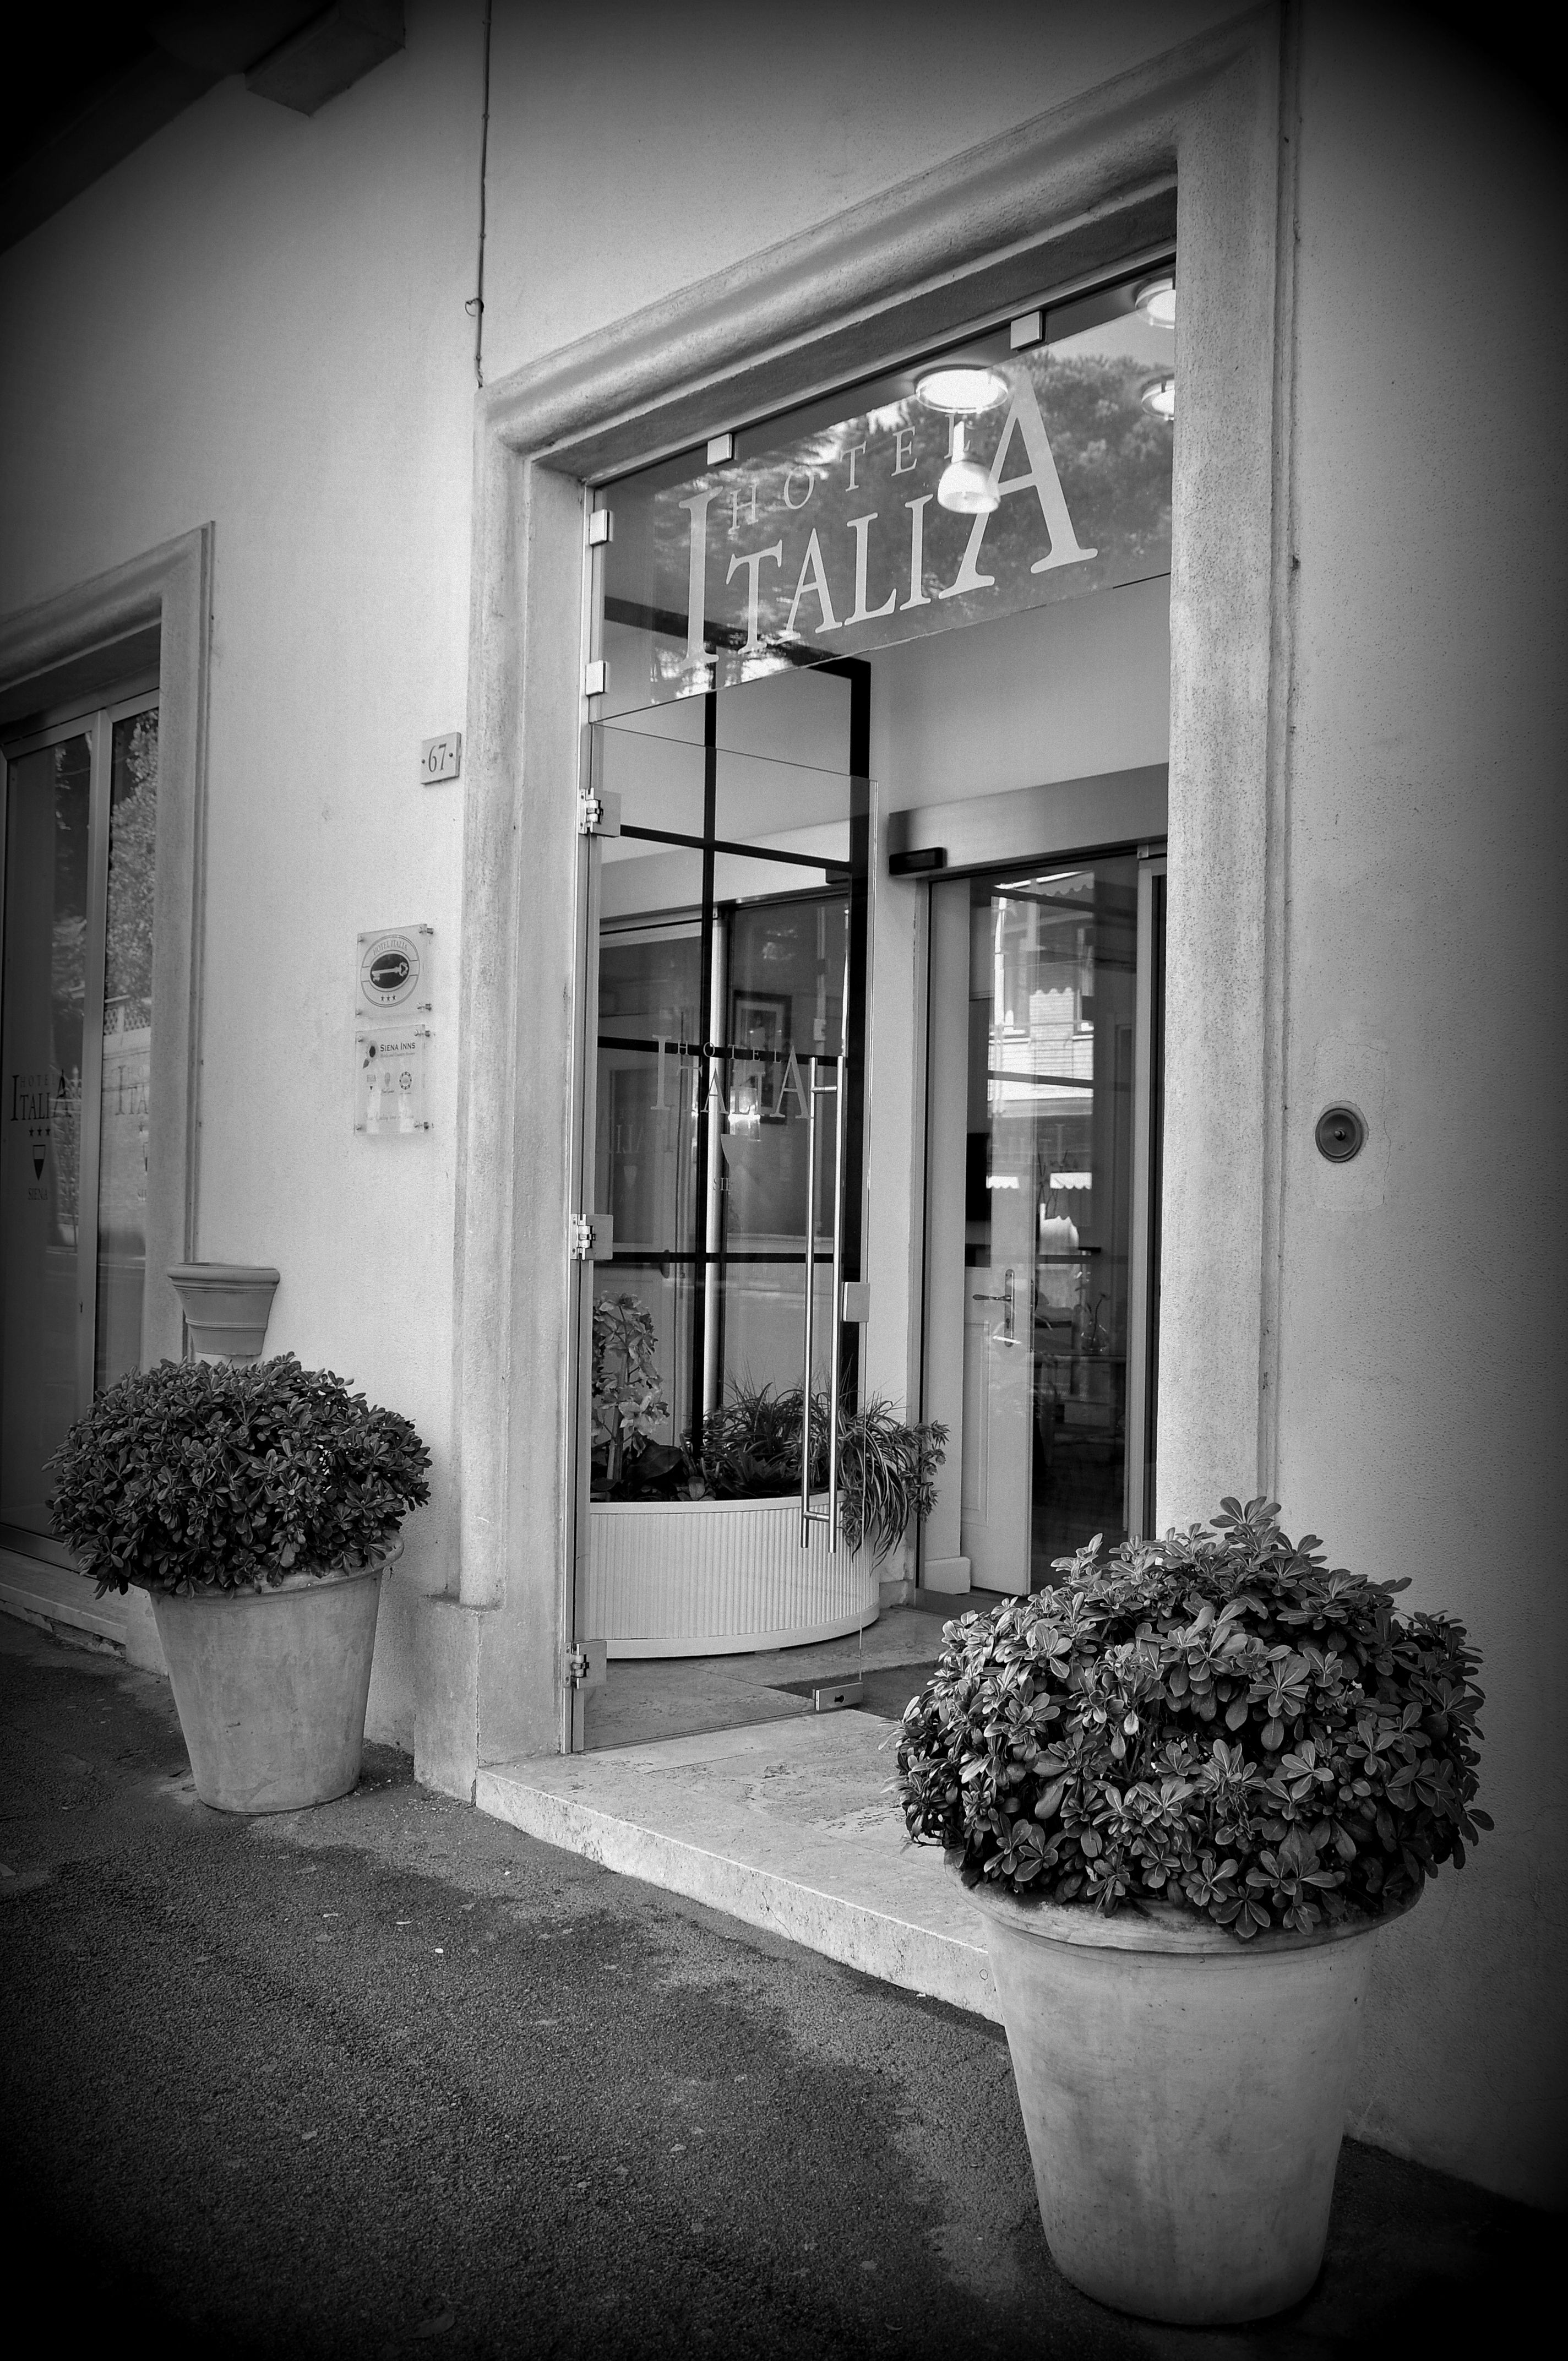 The entrance of Hotel Italia - our door is #24h open for you.